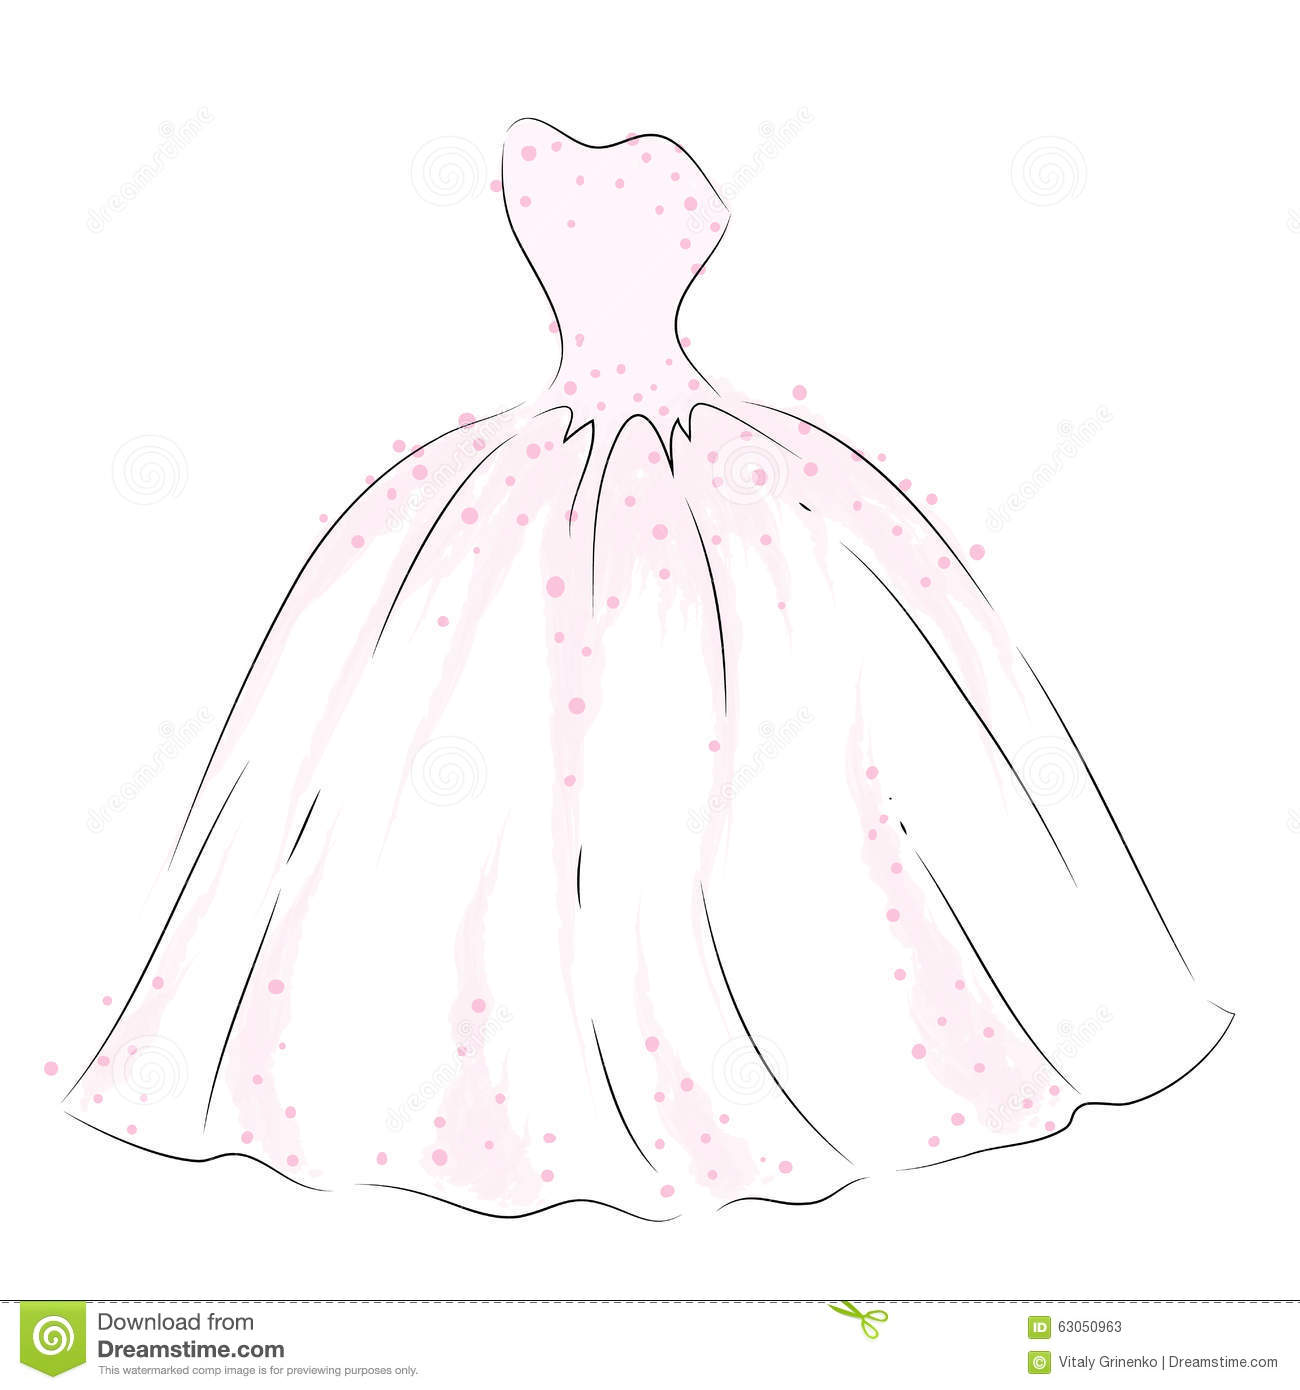 Wedding dress drawings and designs